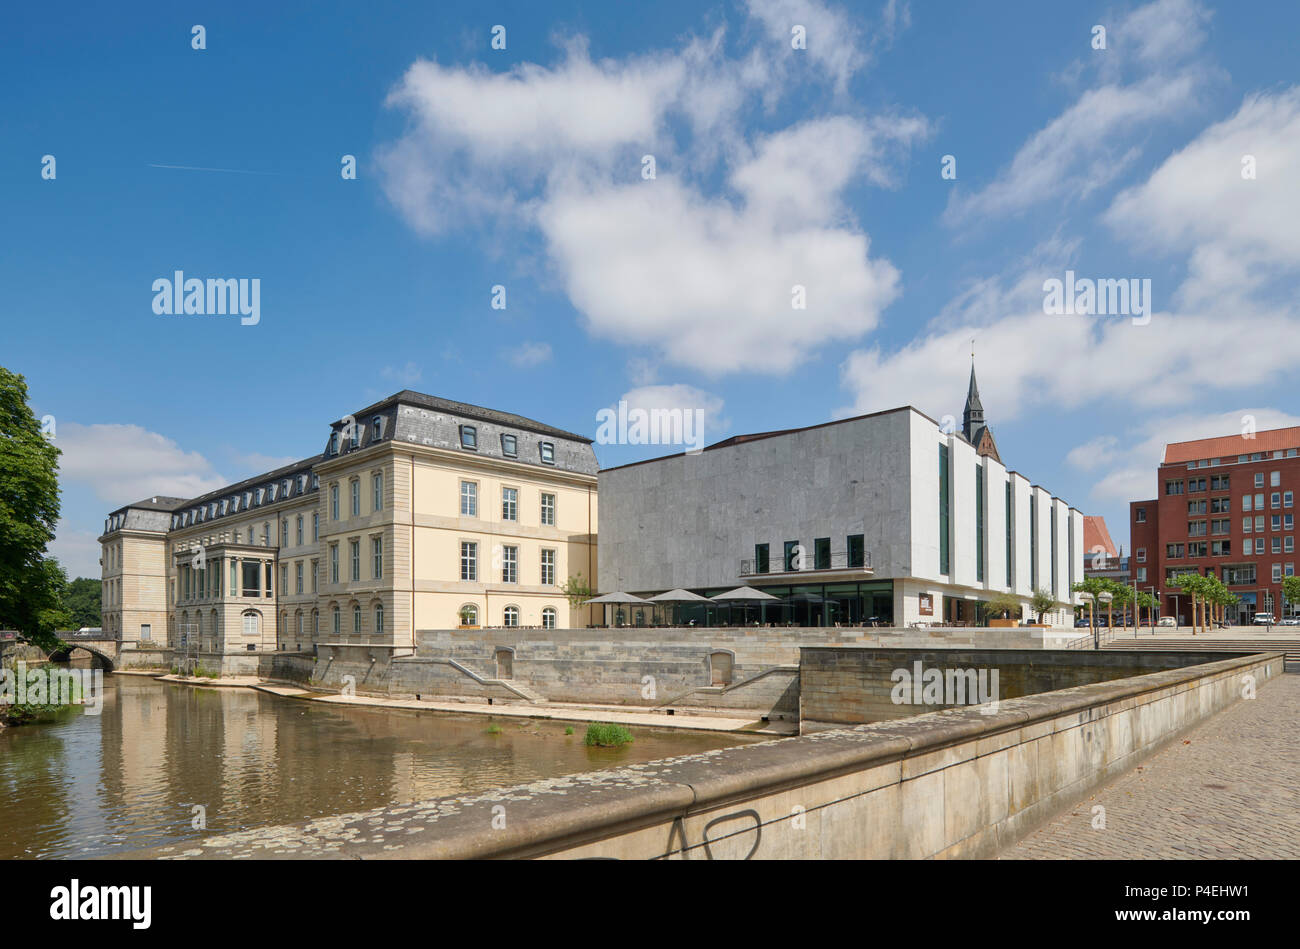 Landtag Hannover Stock Photo